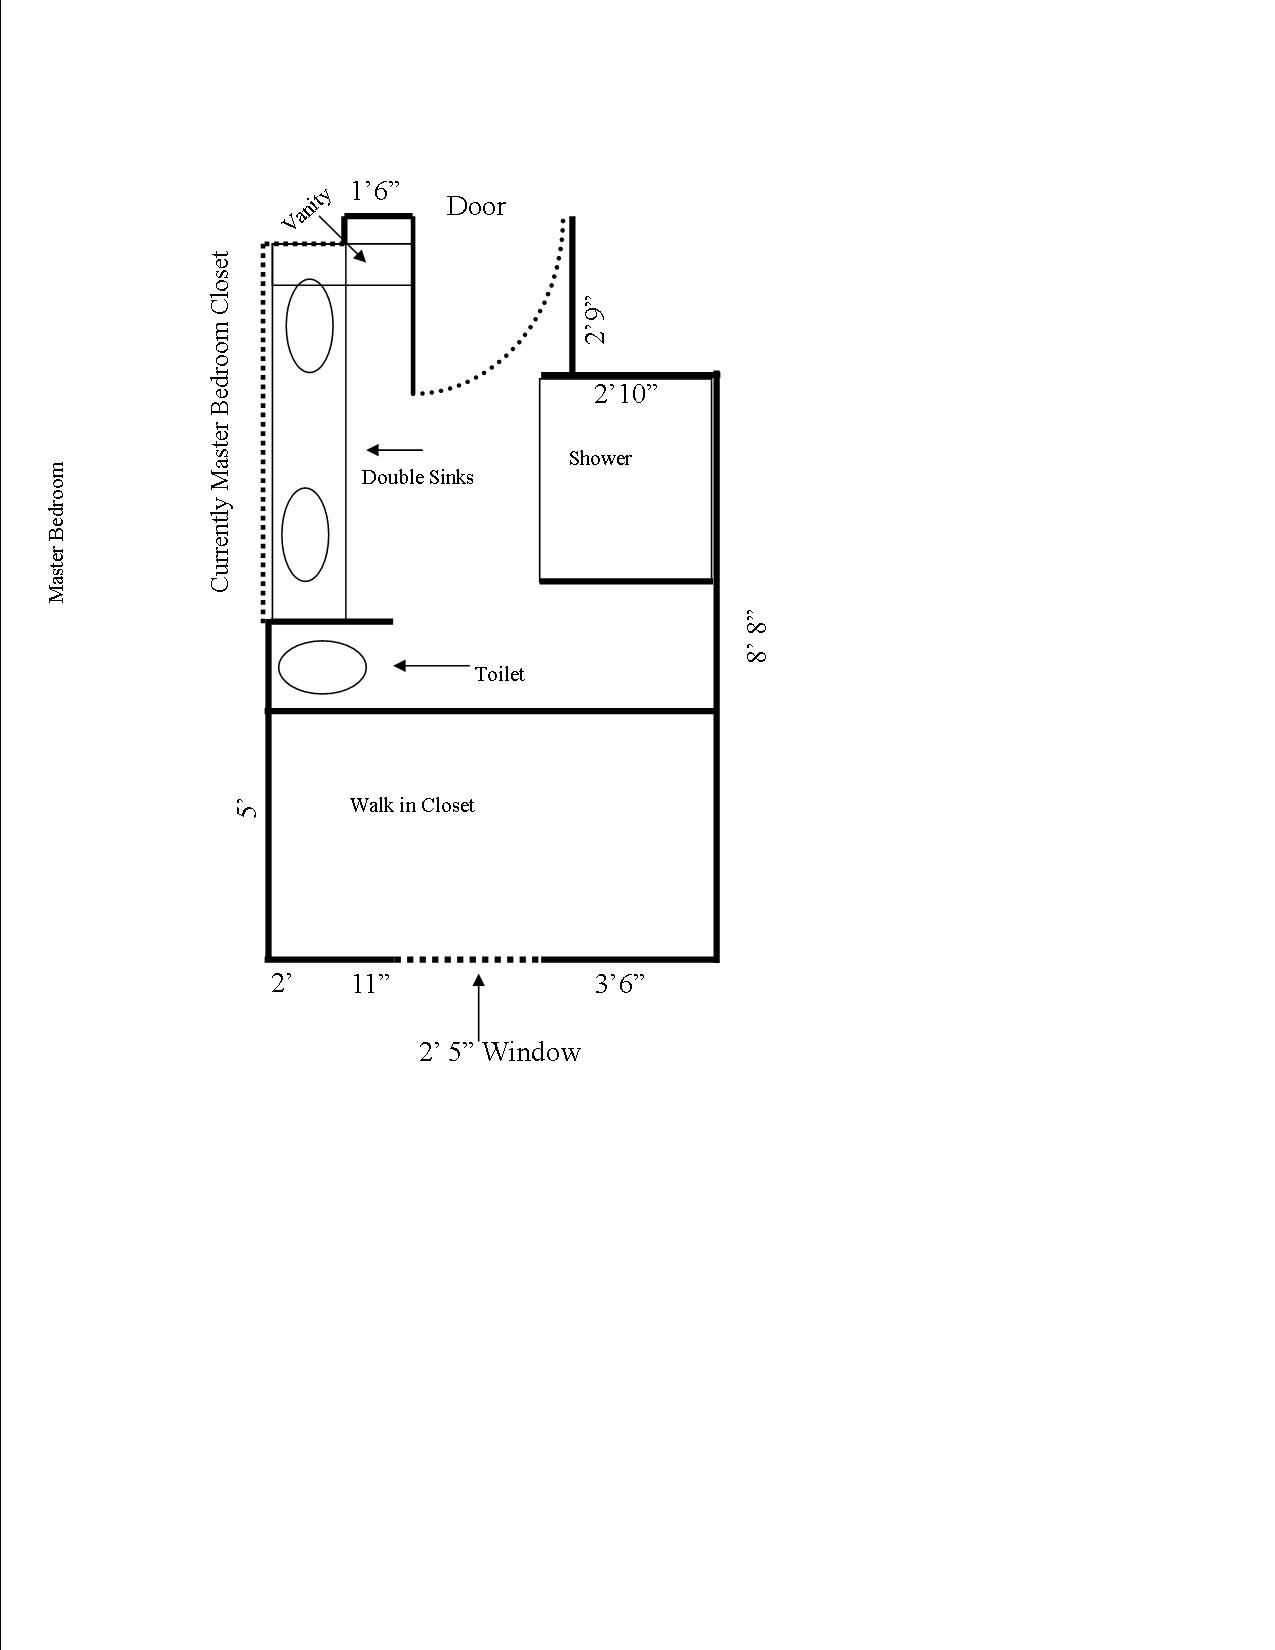 Nice Small Bathroom Layout For Private Living Space: Simple Bathroom ...